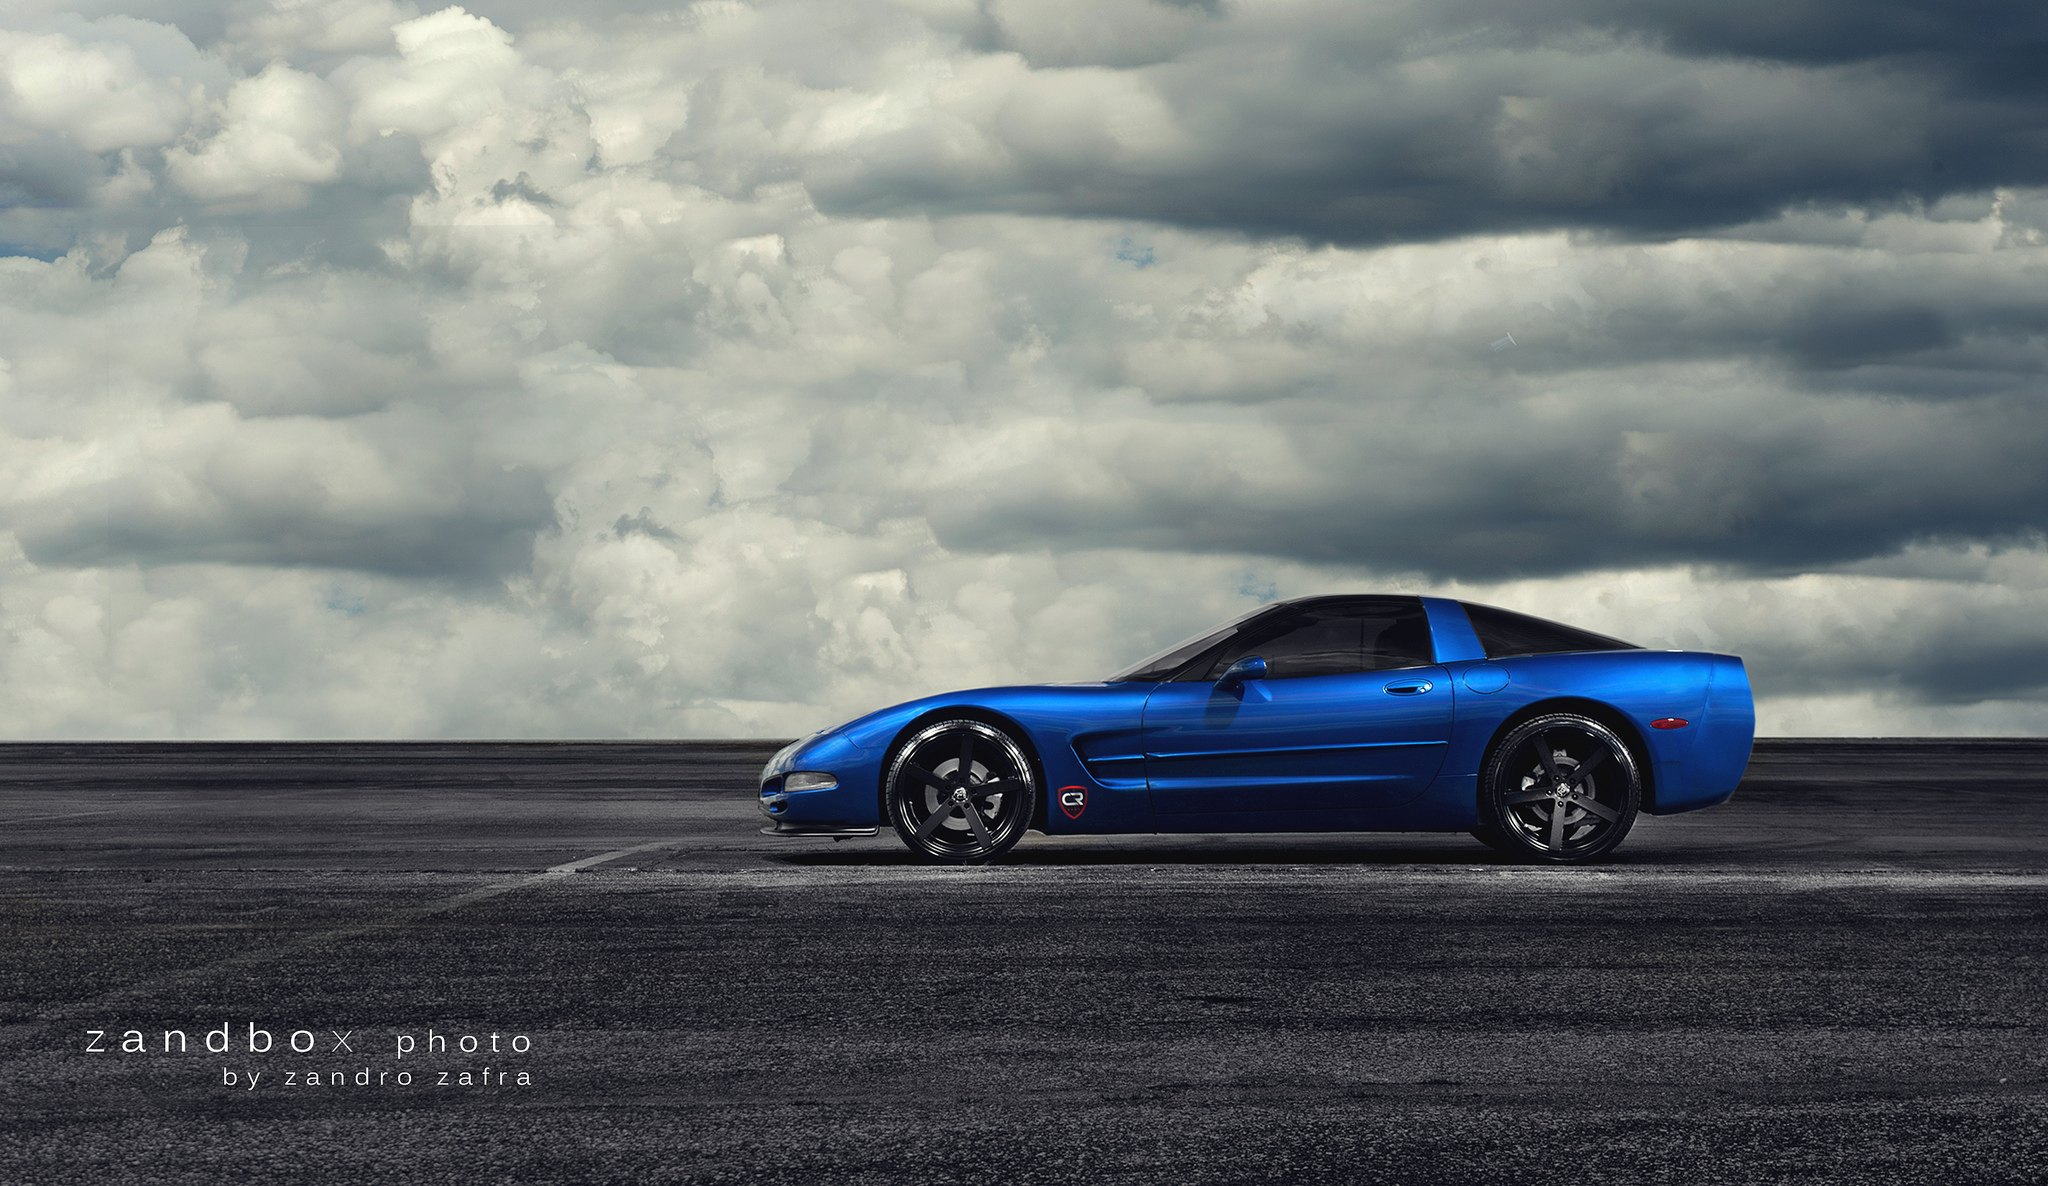 Blue Chevy Corvette with Aftermarket Side Scoops - Photo by zandbox